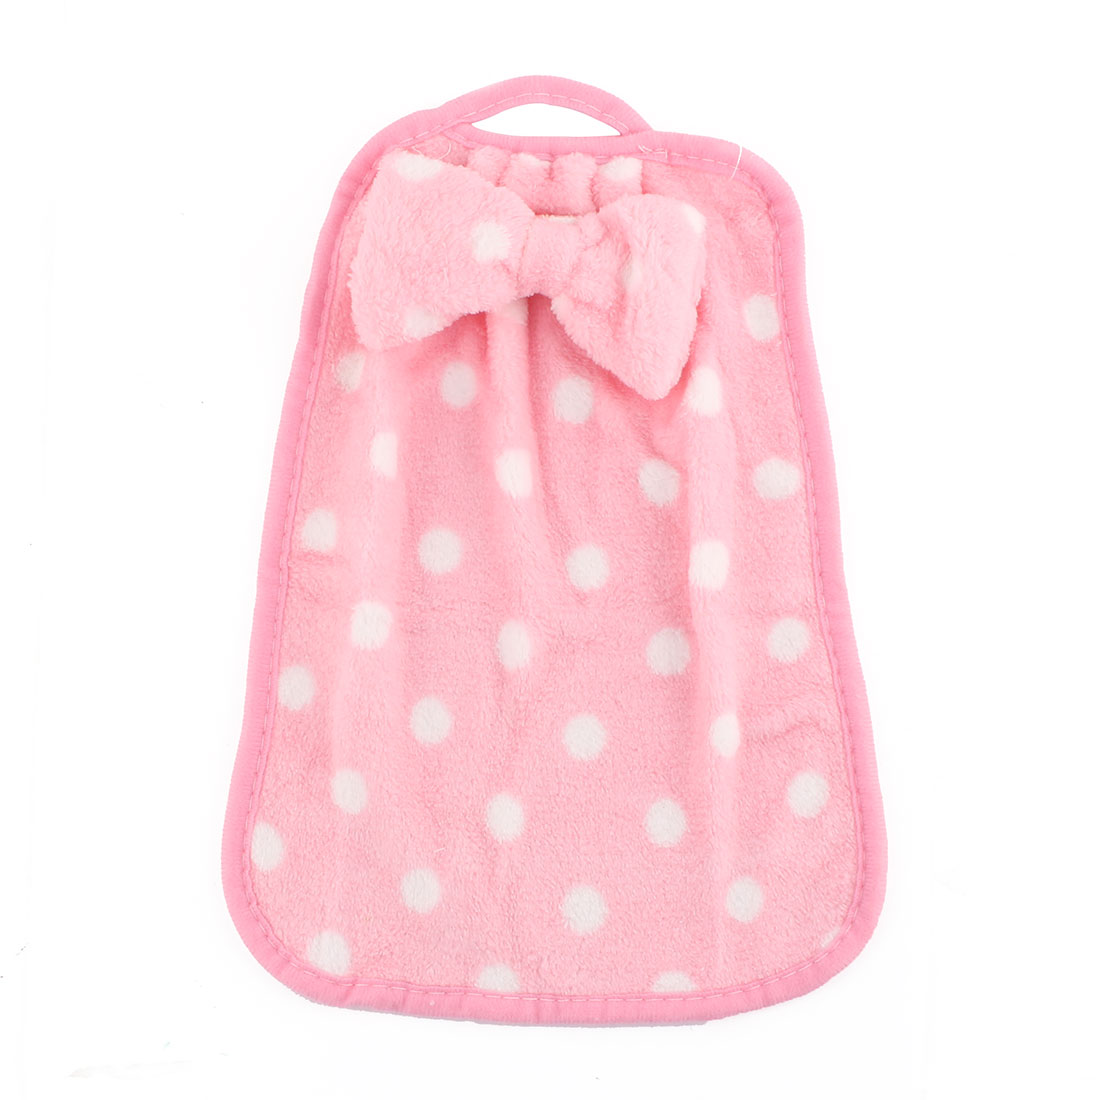 Household Kitchen Coral Velvet Dot Pattern Wall Hanging Hand Towel Light Pink White